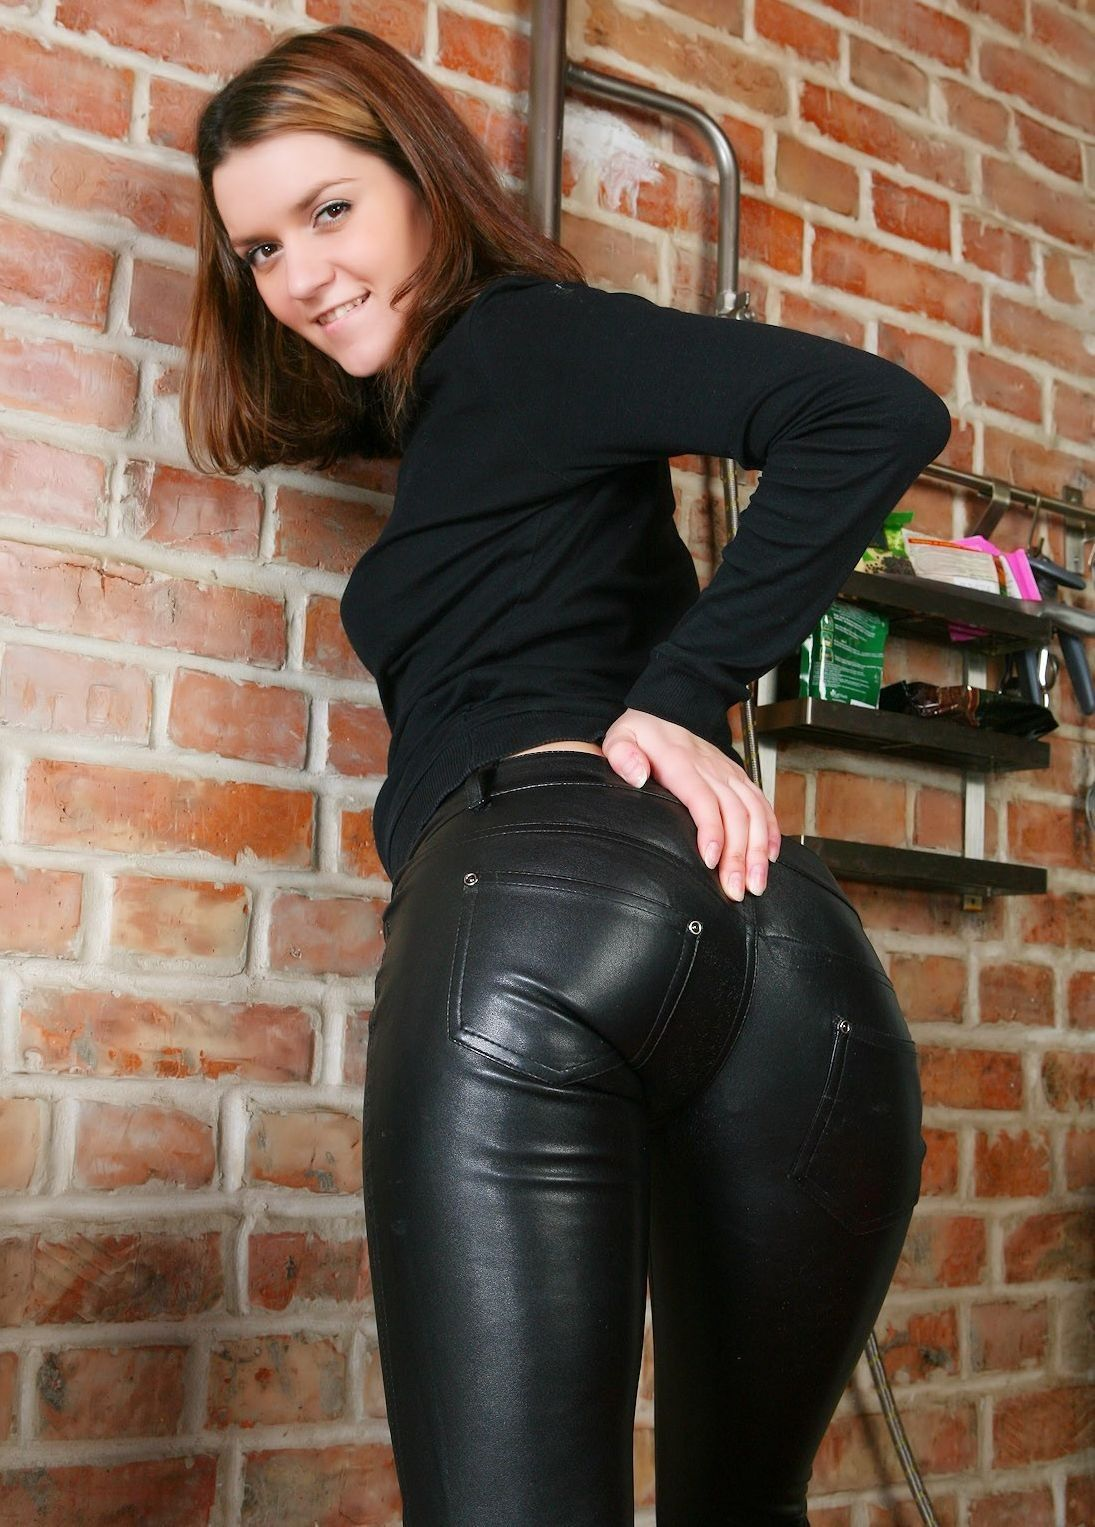 butt pants Amateur leather shiny